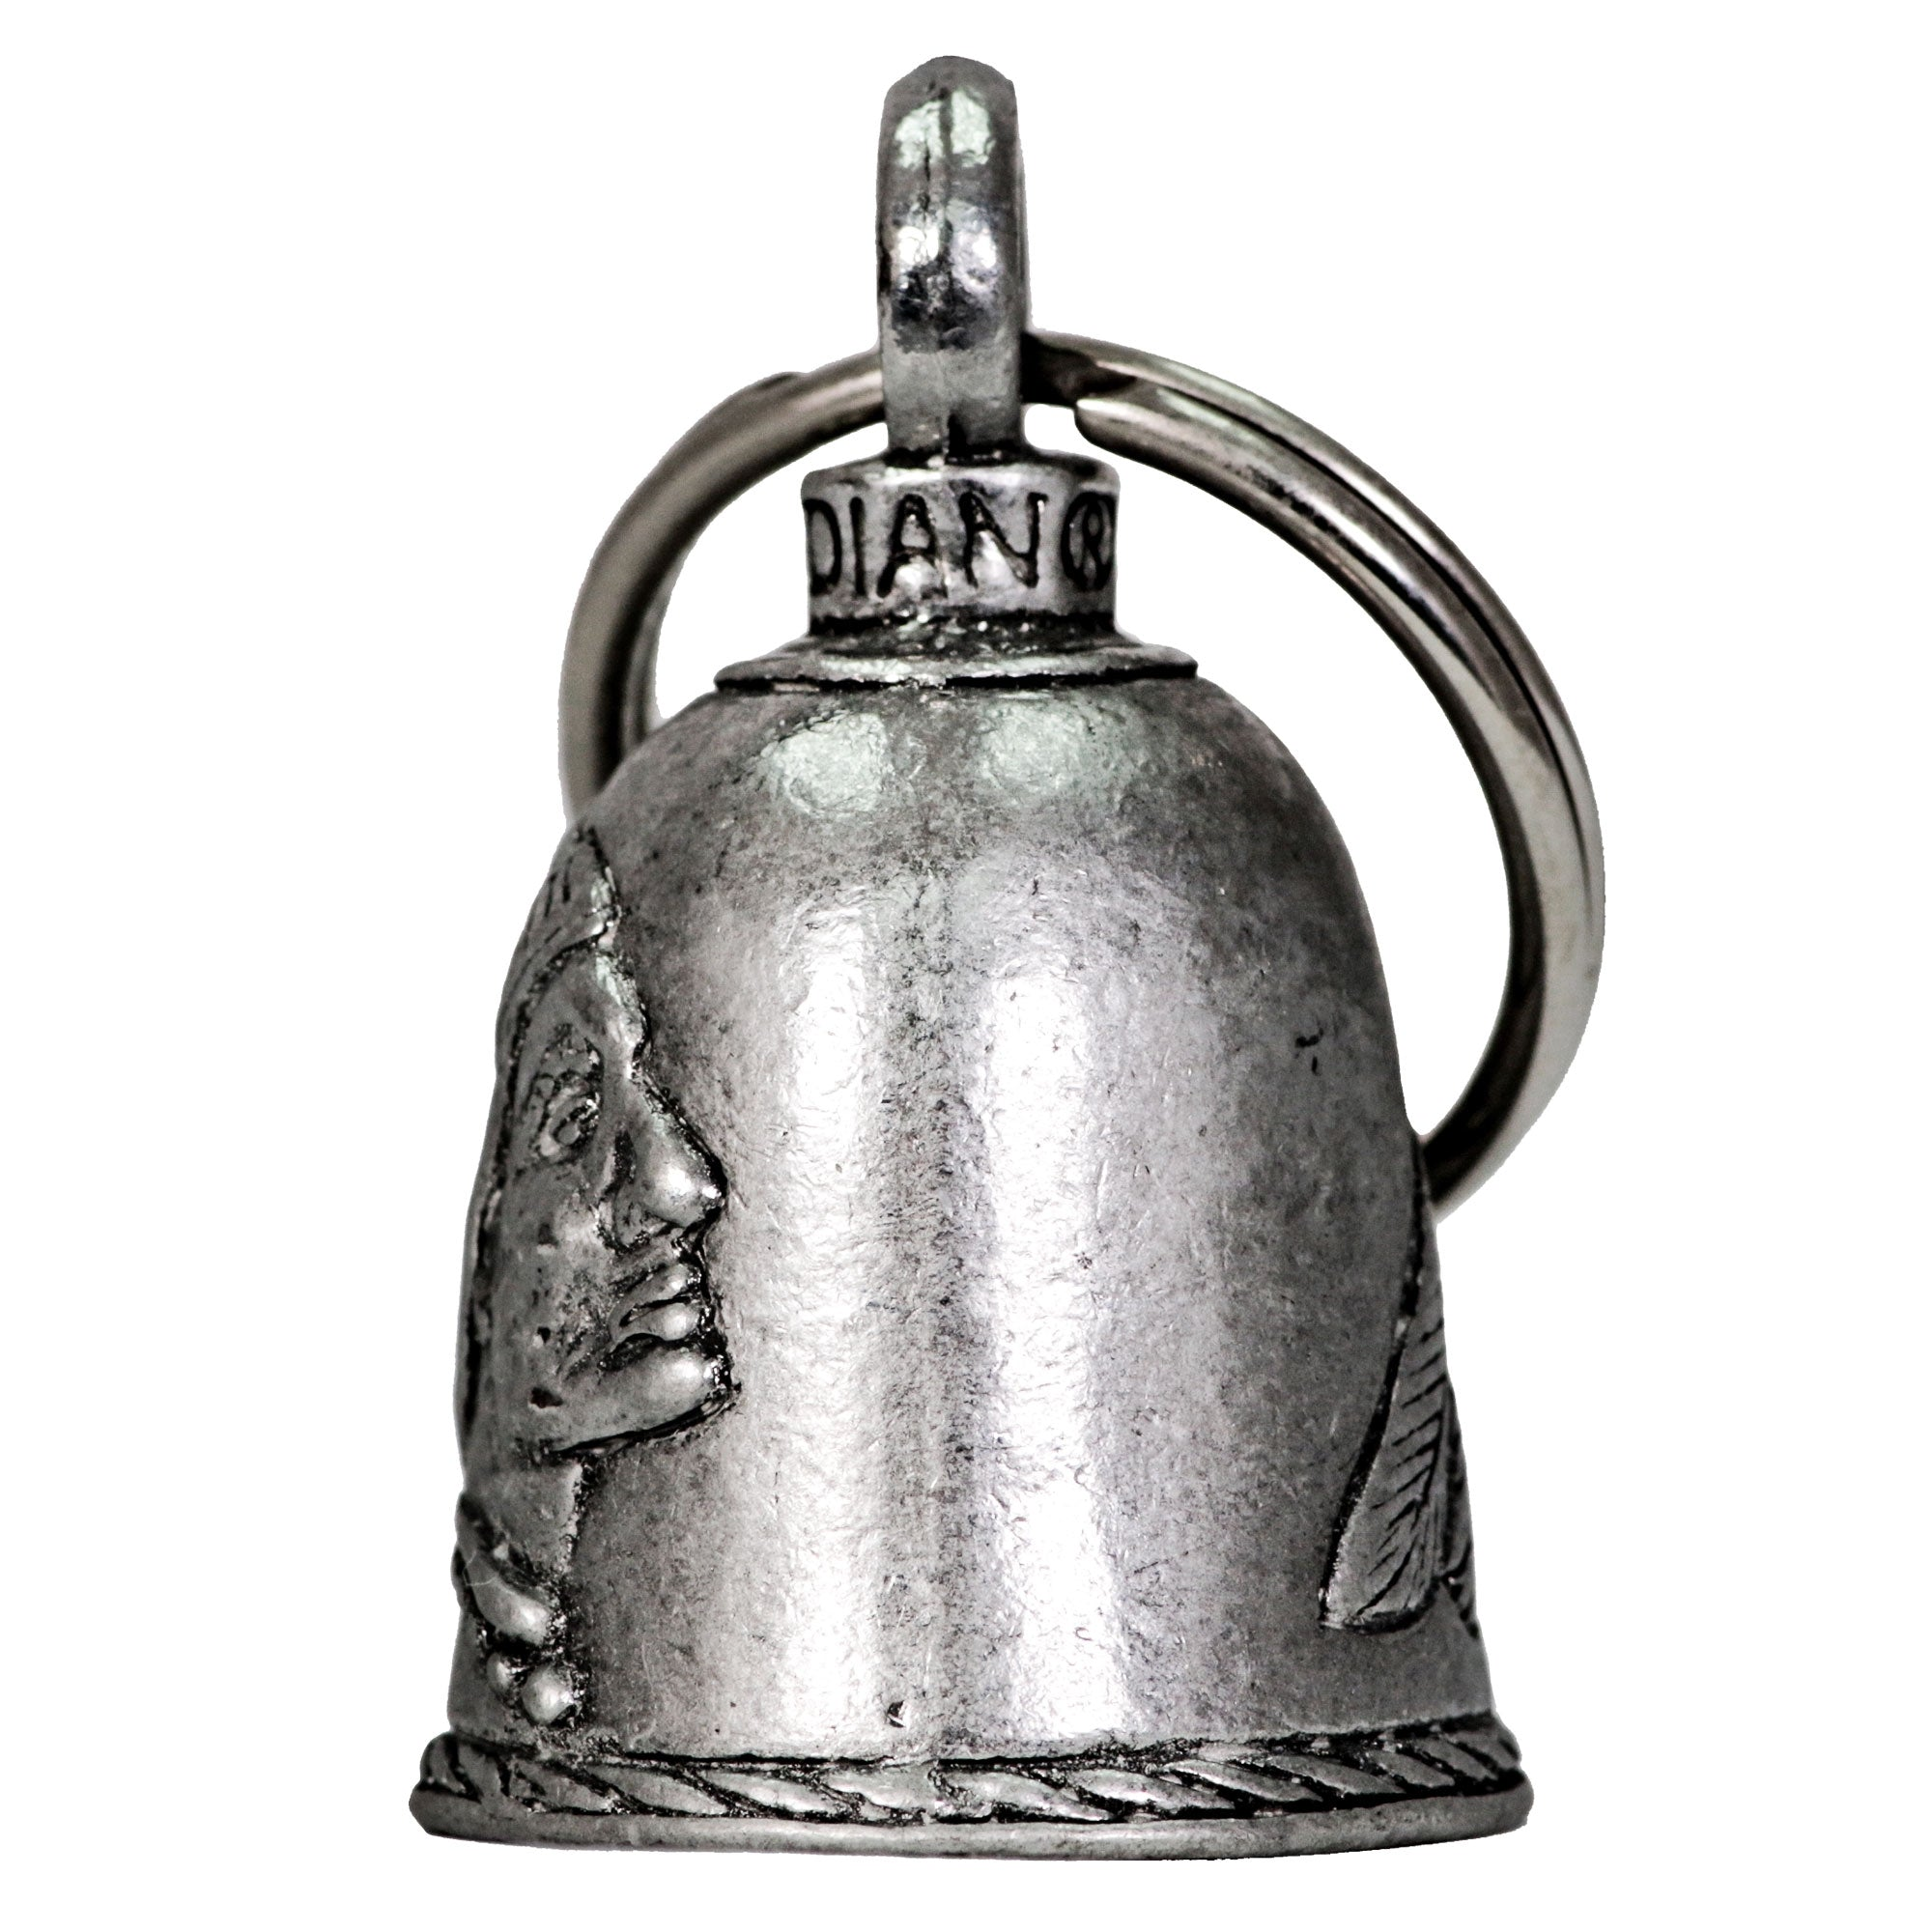 Hot Leathers Native American Guardian Bell